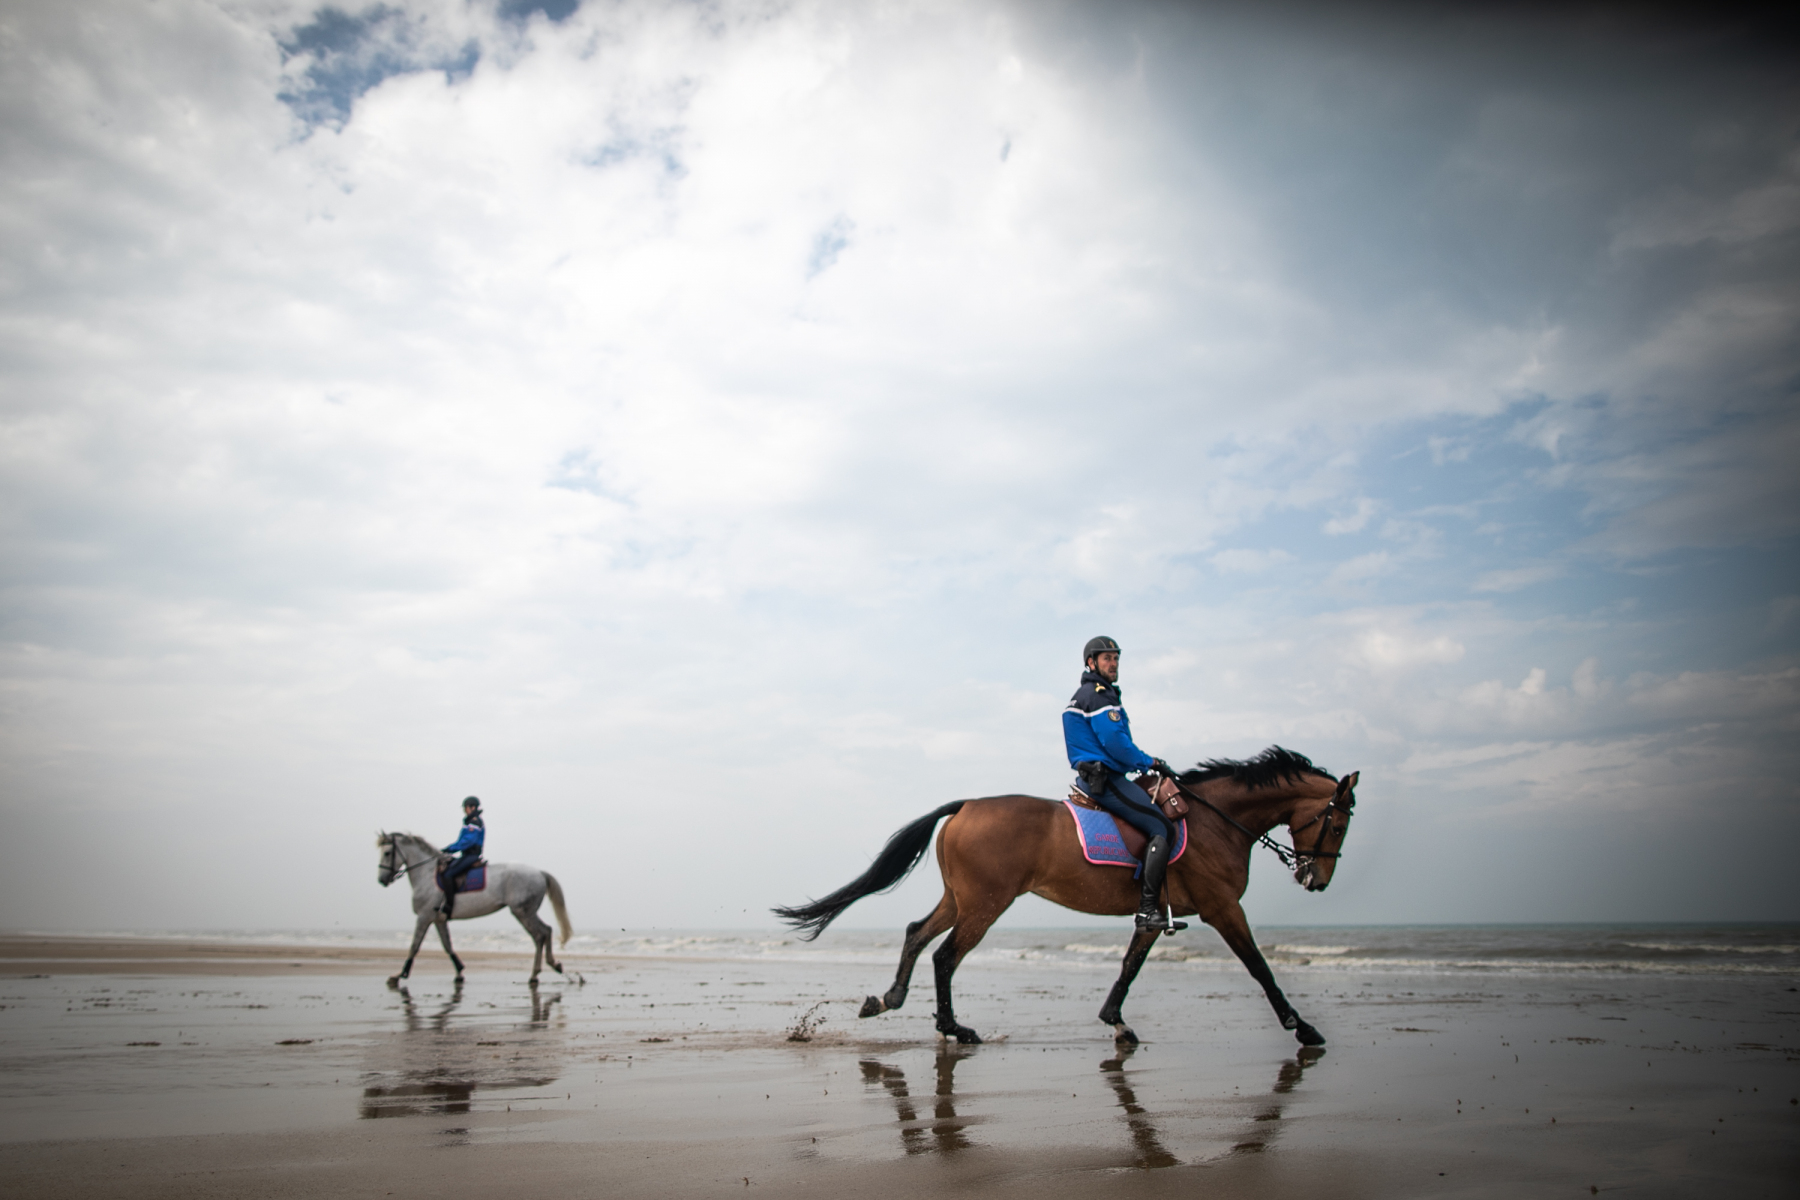 Garde républicaine mounted gendarmes ride on the Courseulles-sur-Mer beach, northwestern France, on April 17, 2020, following a strict lockdown across France to stop the spread of COVID-19, caused by the novel coronavirus.67